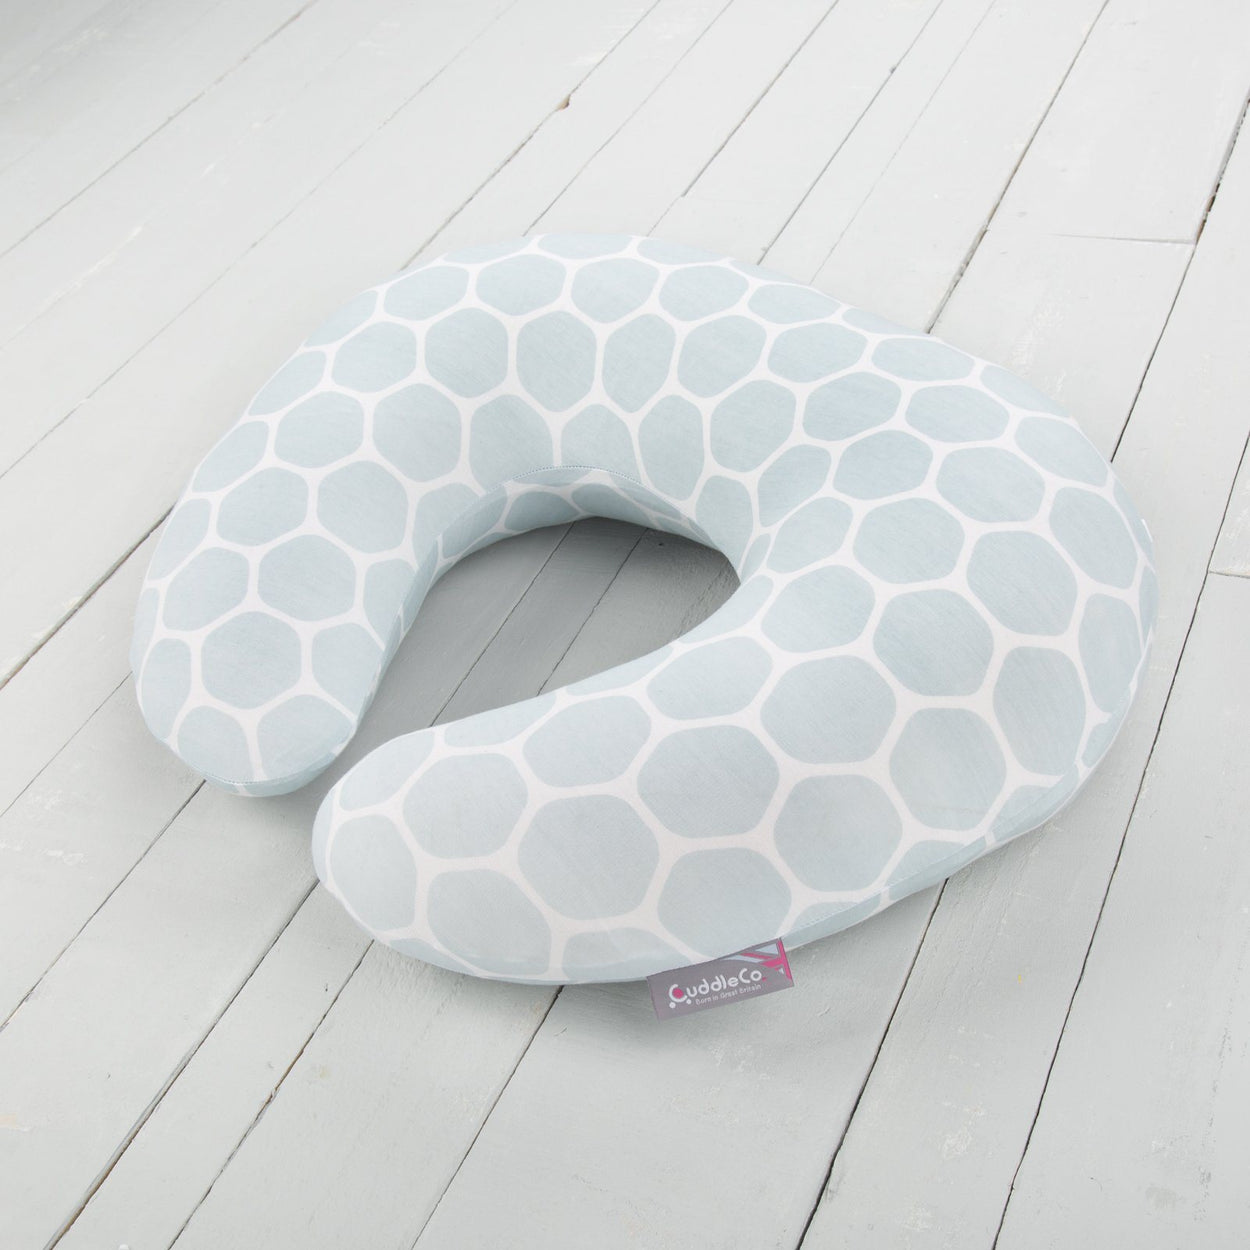 Comfi-Mum Memory Foam Feeding Pillow - Honeycomb Feeding & Support cuddleco